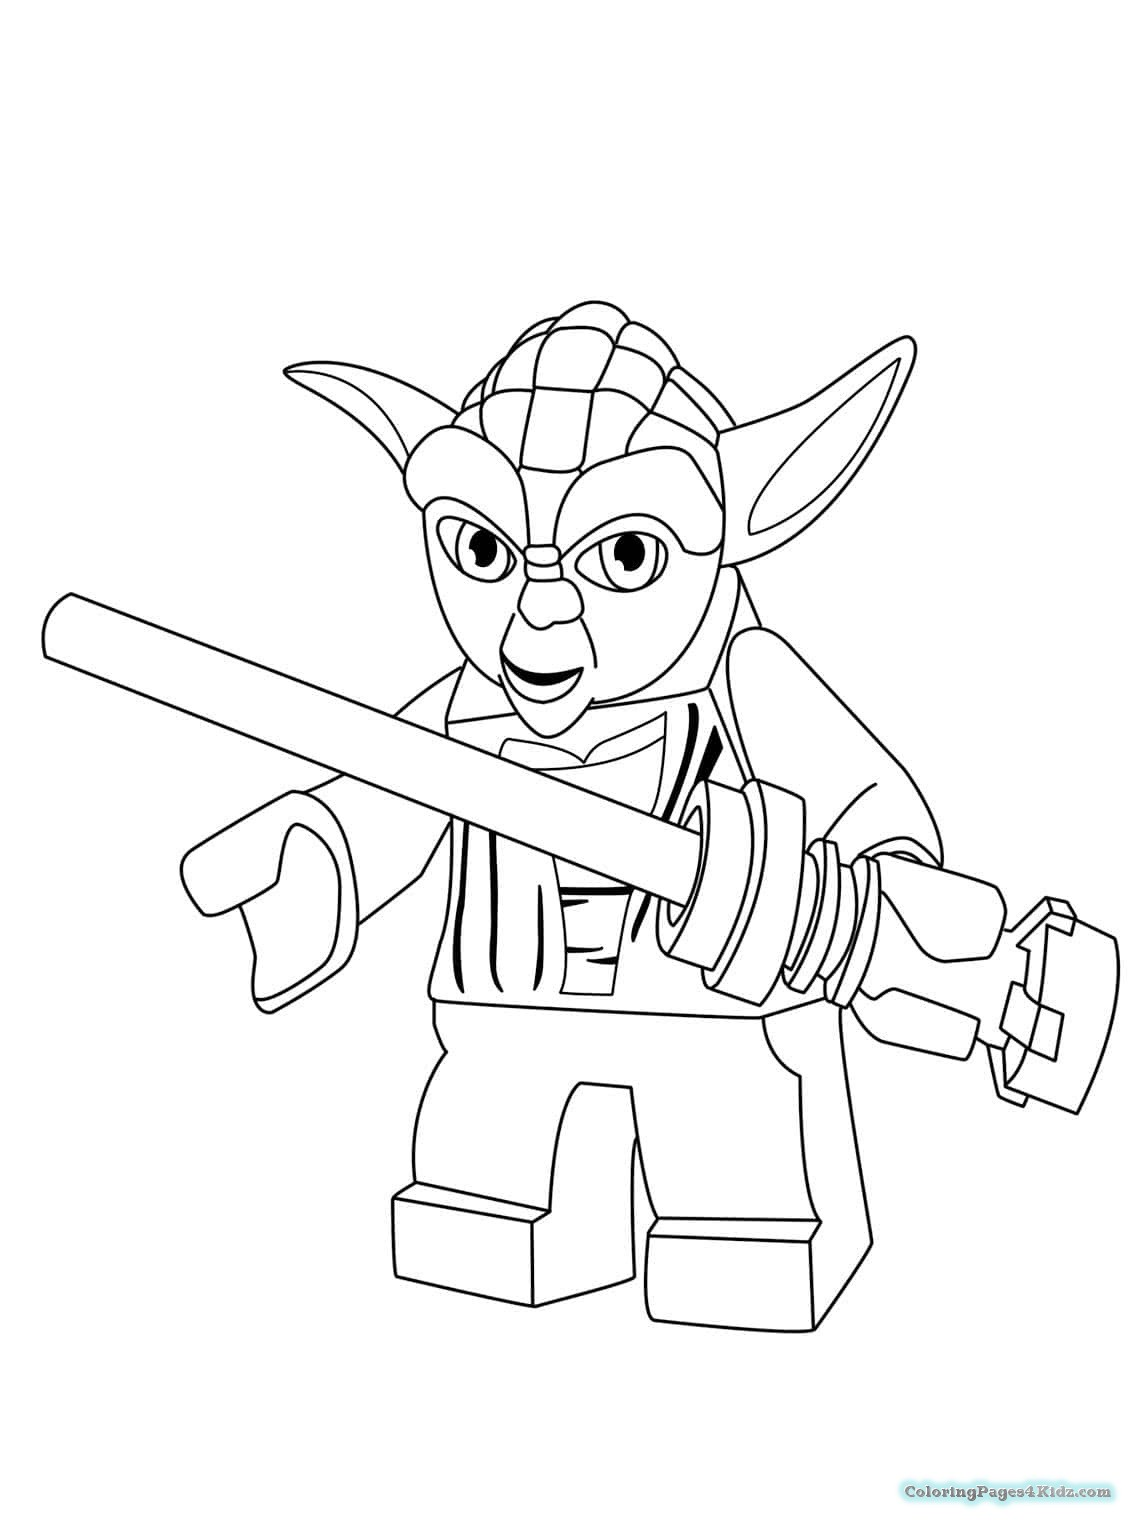 lego star wars printable coloring pages lego star wars coloring pages to print bestappsforkidscom star wars coloring pages printable lego